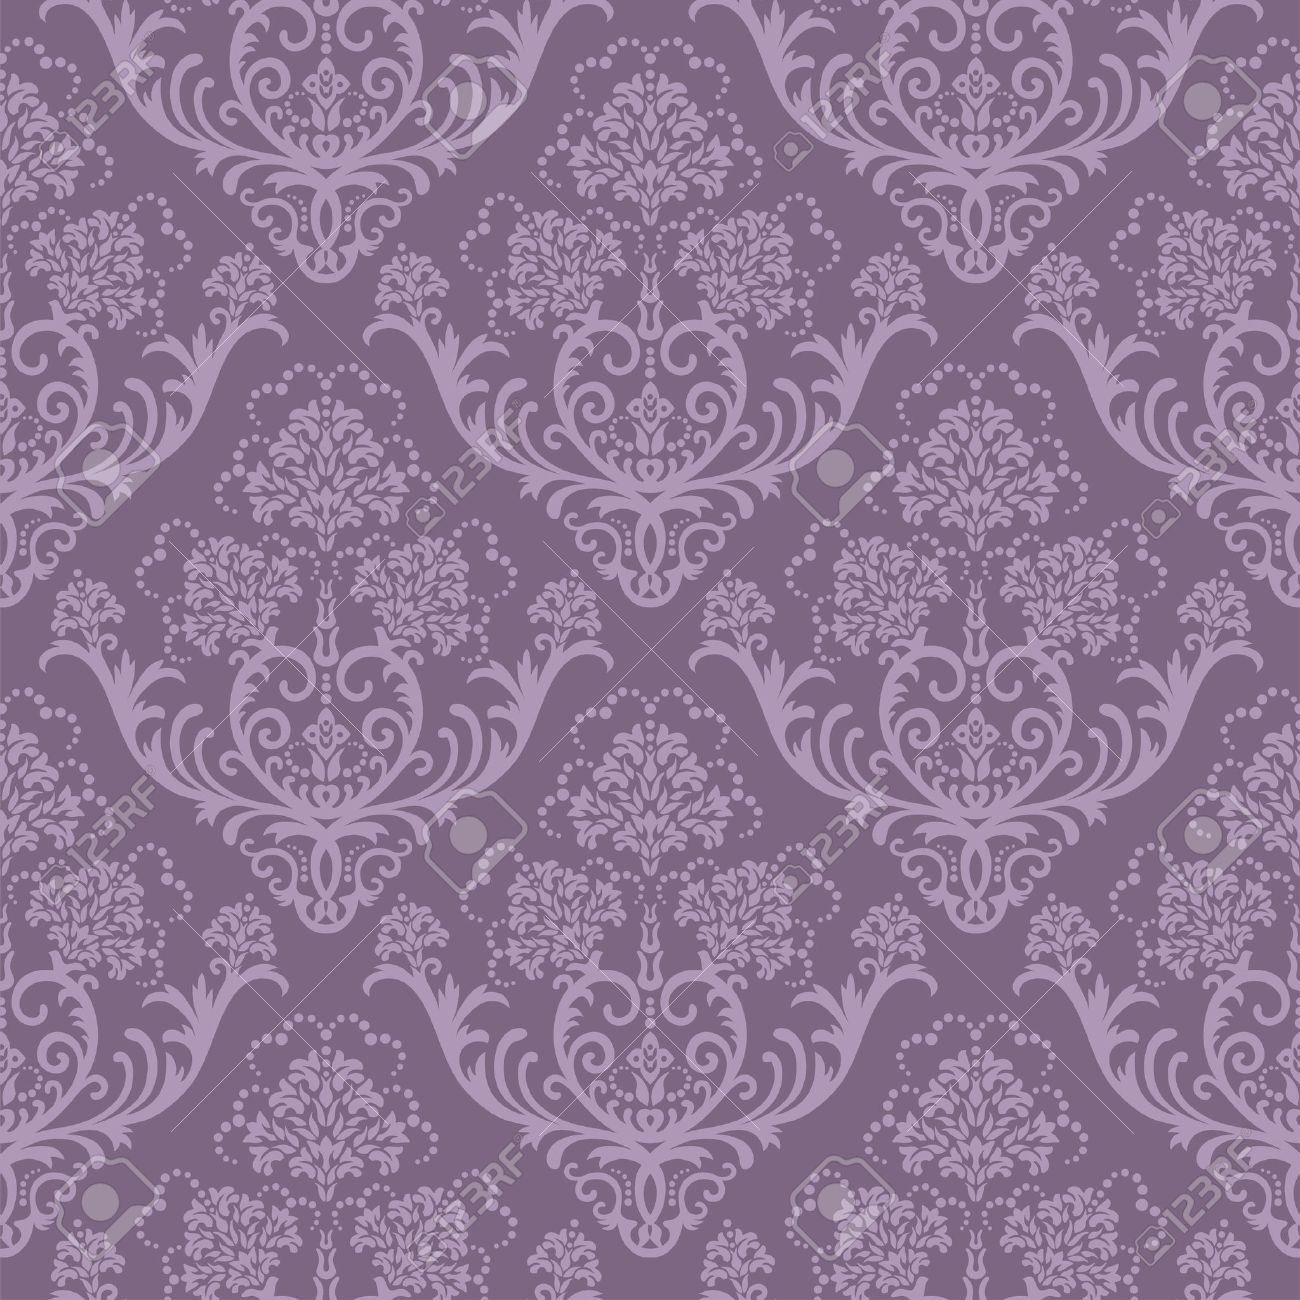 Seamless Purple Floral Damask Wallpaper Royalty Free Cliparts